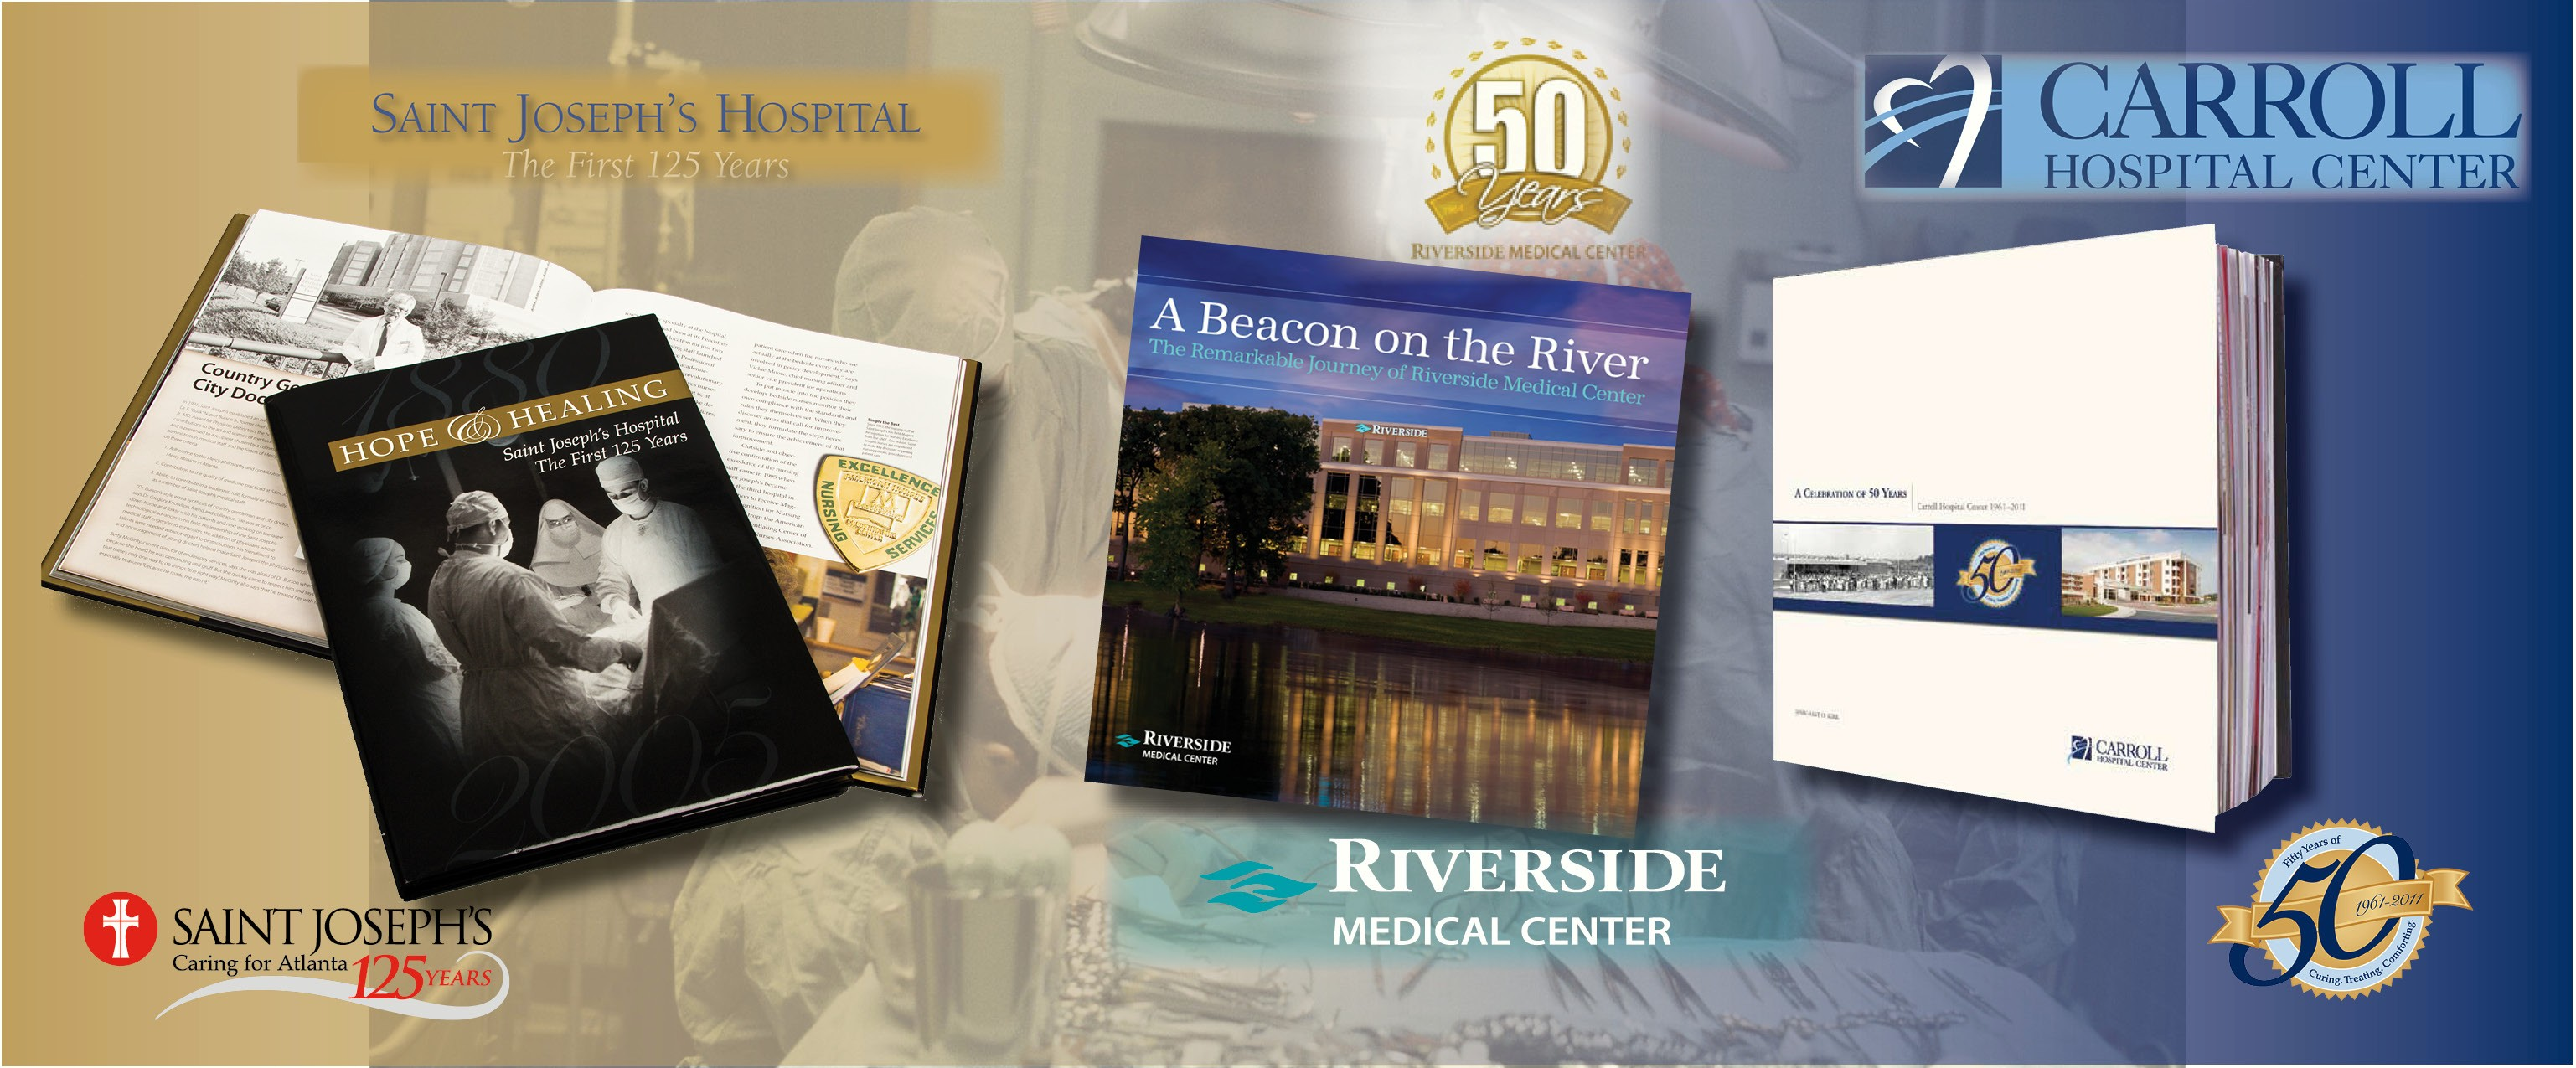 Hospitals choose Bookhouse Group, Inc. when they are commemorating an important anniversary